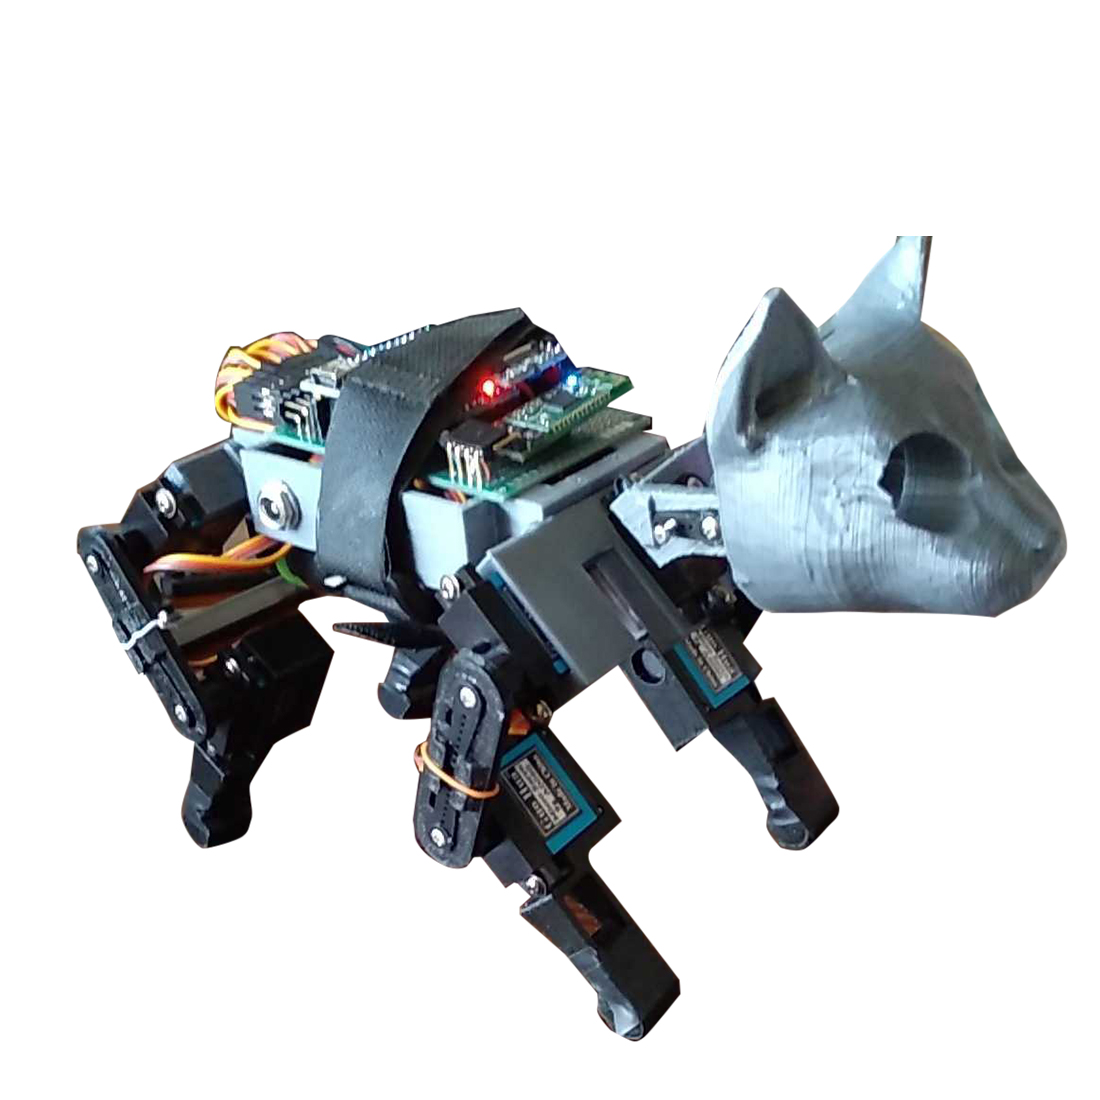 Programmable Mechanical Dog 11DOF Bionic Quadruped Crawling Robot Toy Programmable Toys Game  2020 New Arrival